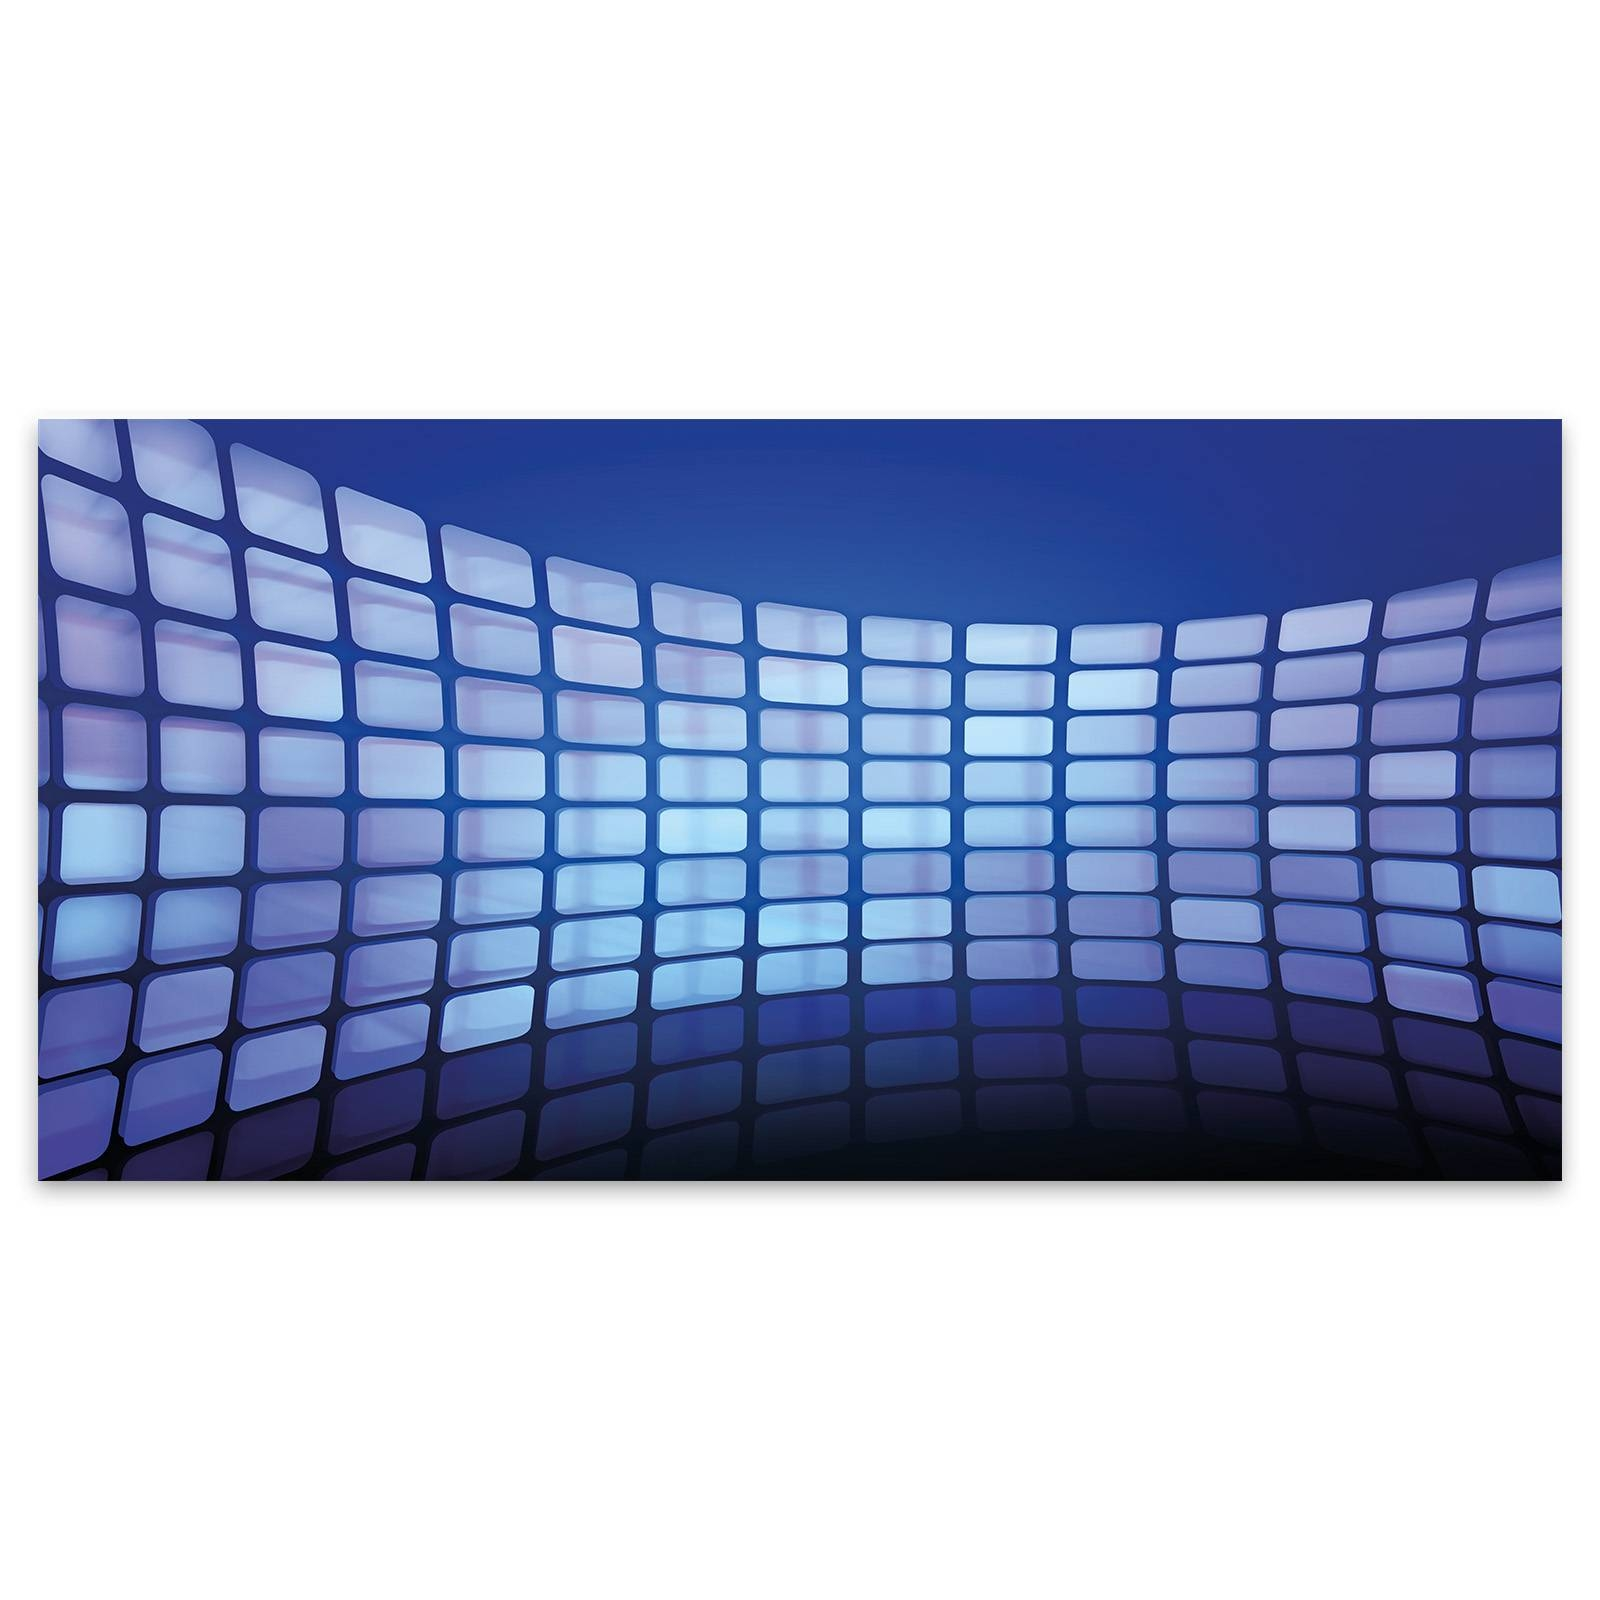 Extra Large Abstract 3D Blue Shiny Blocks Acrylic Glass Wall Art Throughout 2018 3D Glass Wall Art (View 13 of 20)